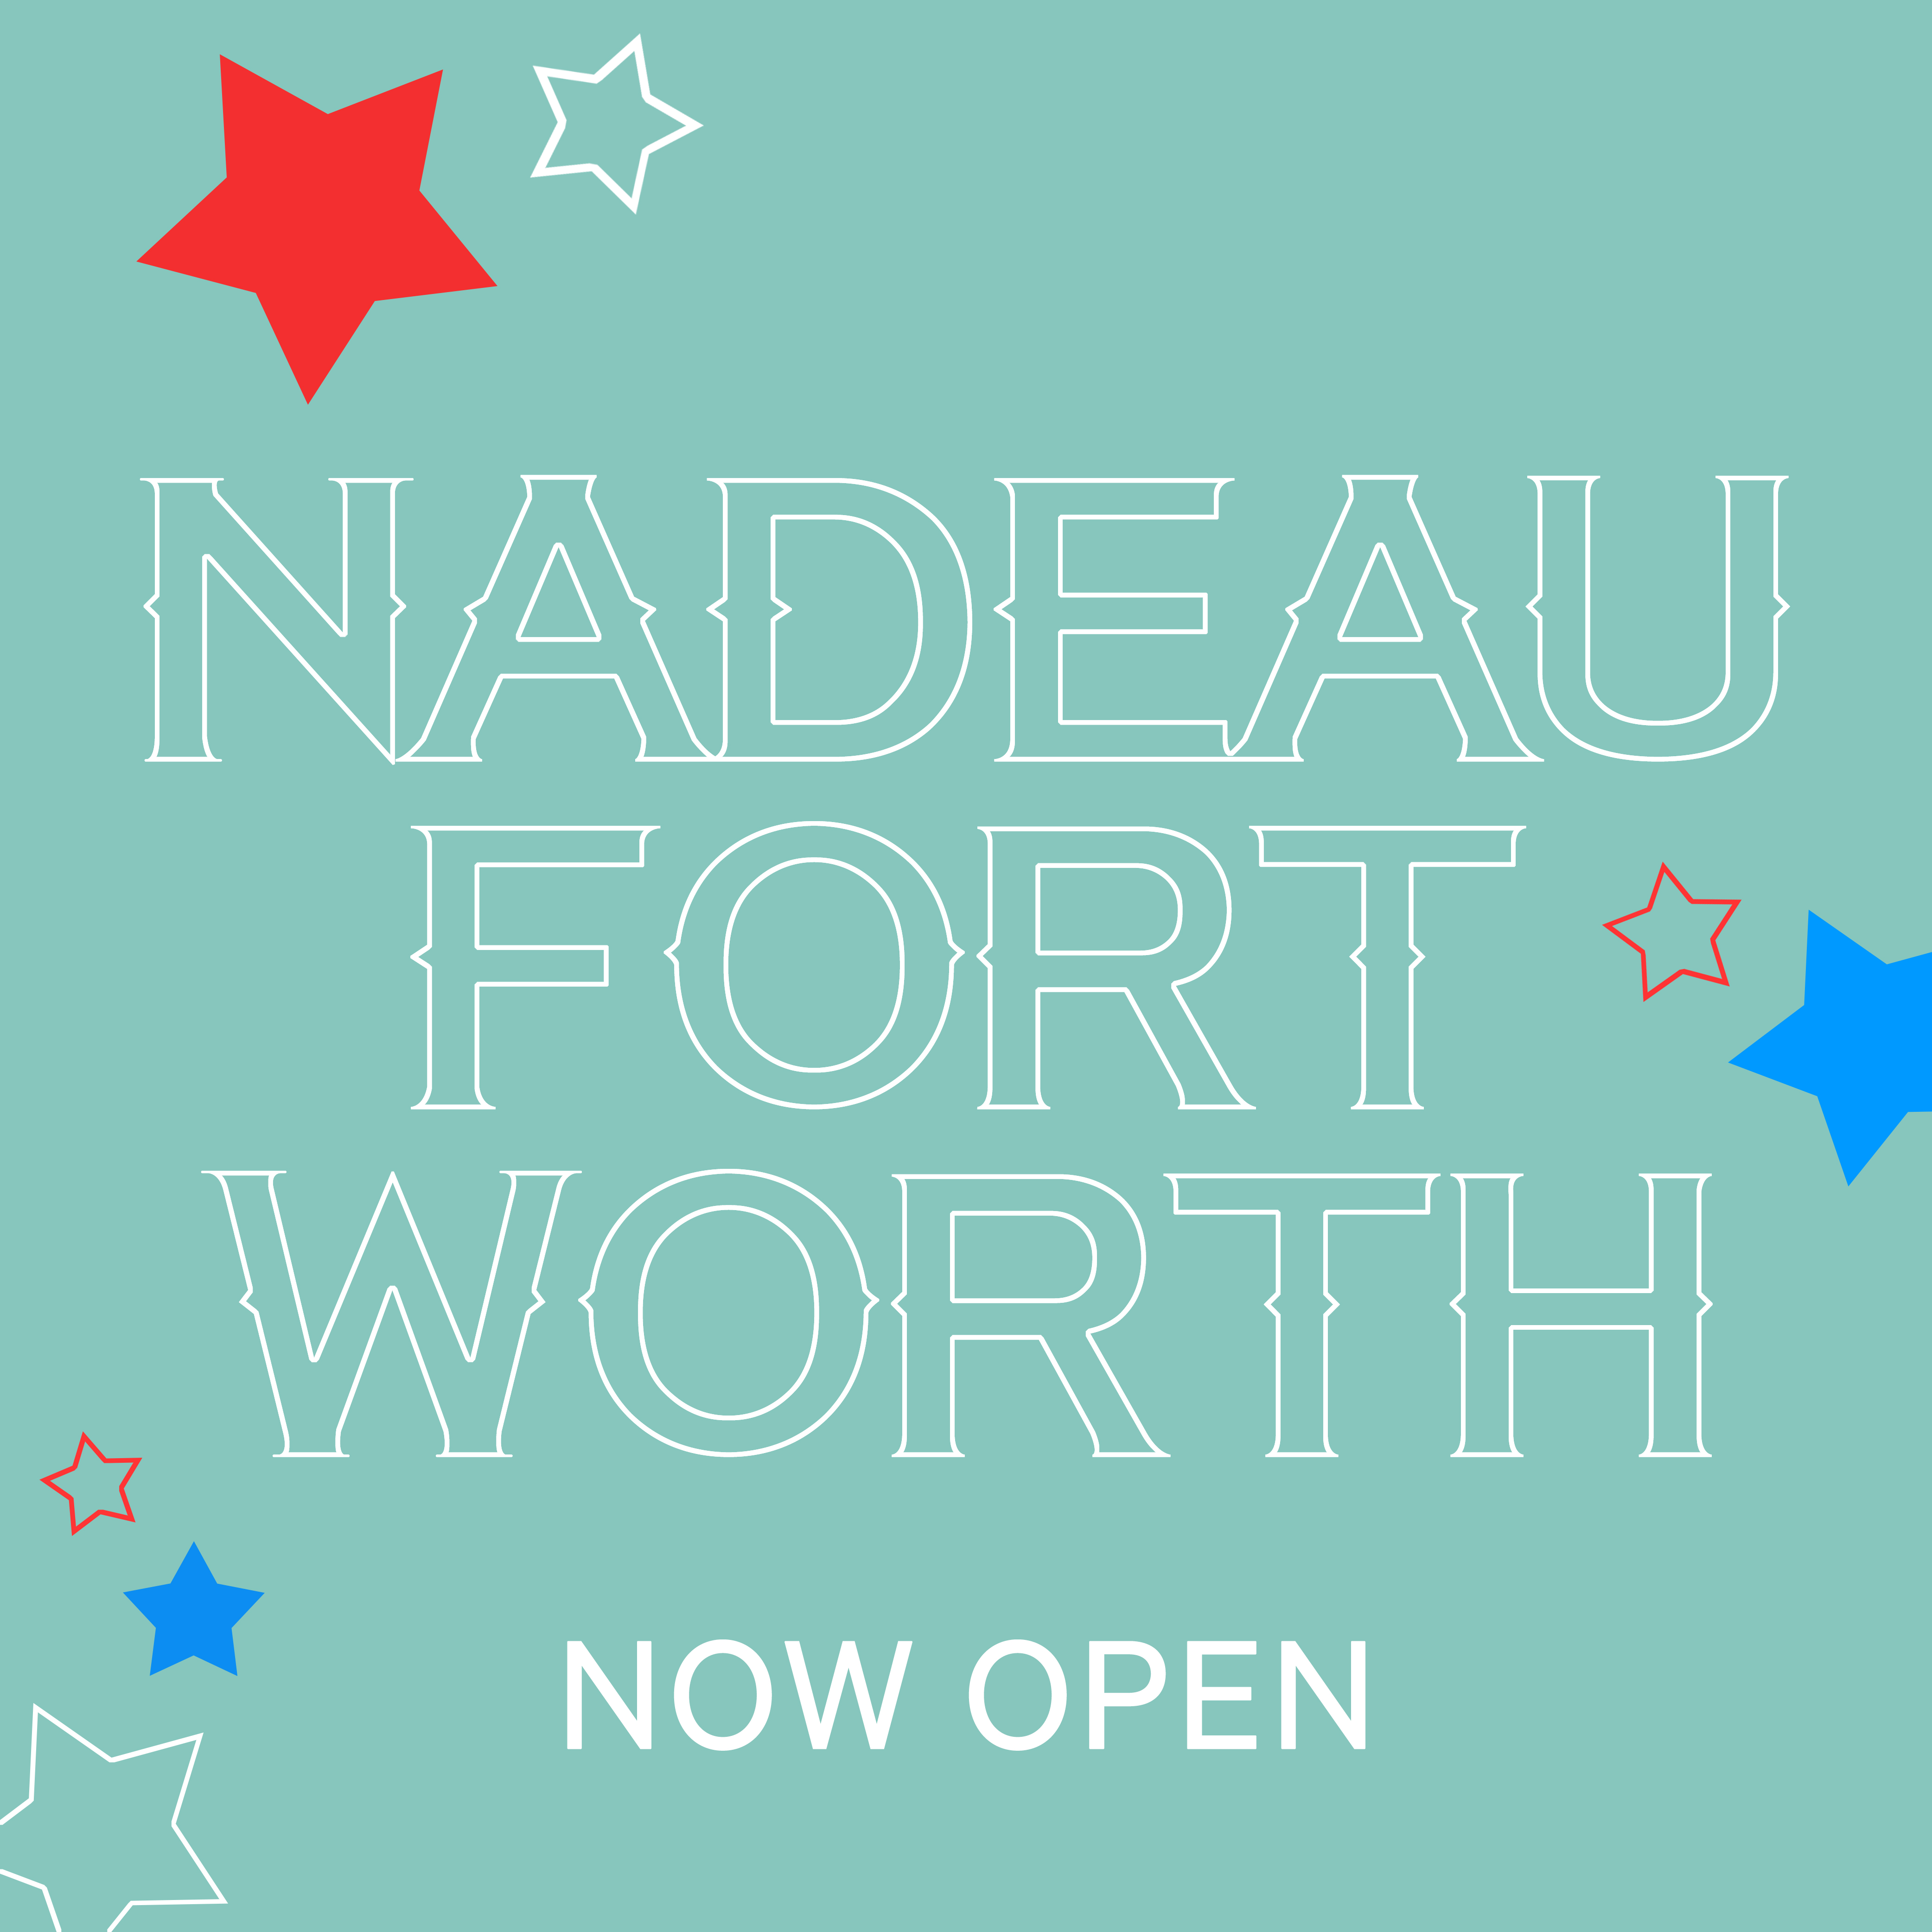 Fort Worth Now Open